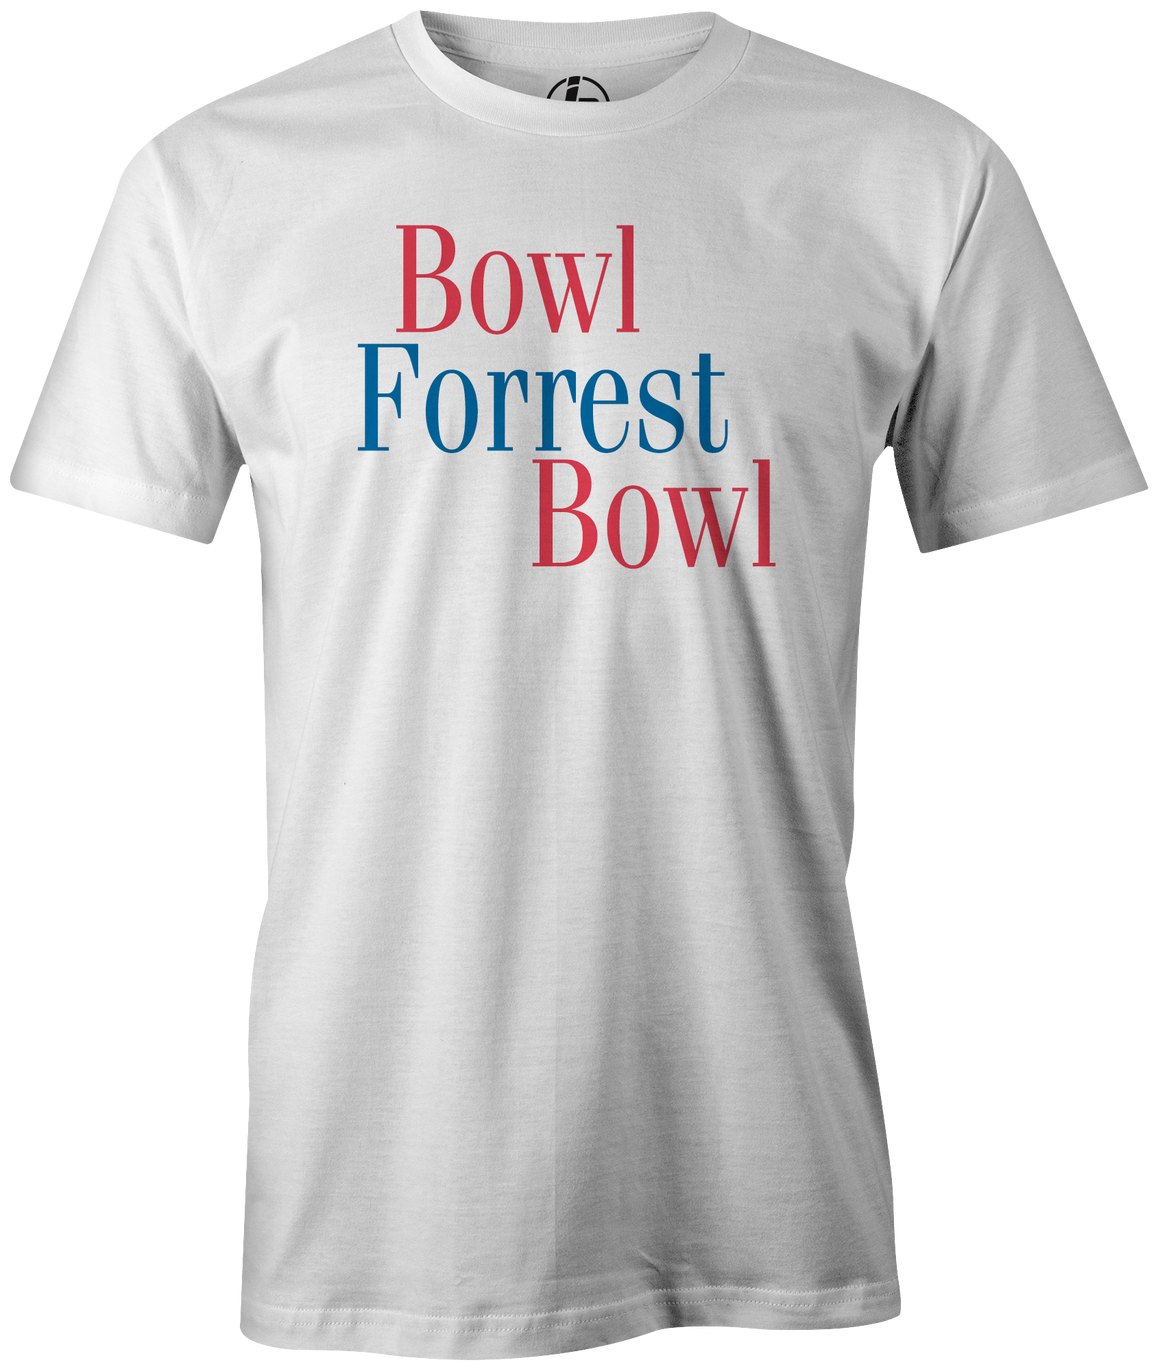 Bowl Forrest Bowl Men's t-shirt, White, bowling, movie, tom hanks, forreest gump, league bowling team shirt, tournament shirt, funny, cool, novelty, vintage, classic. tee, t-shirt, tee shirt, tee-shirt, tees, apparel, merch.